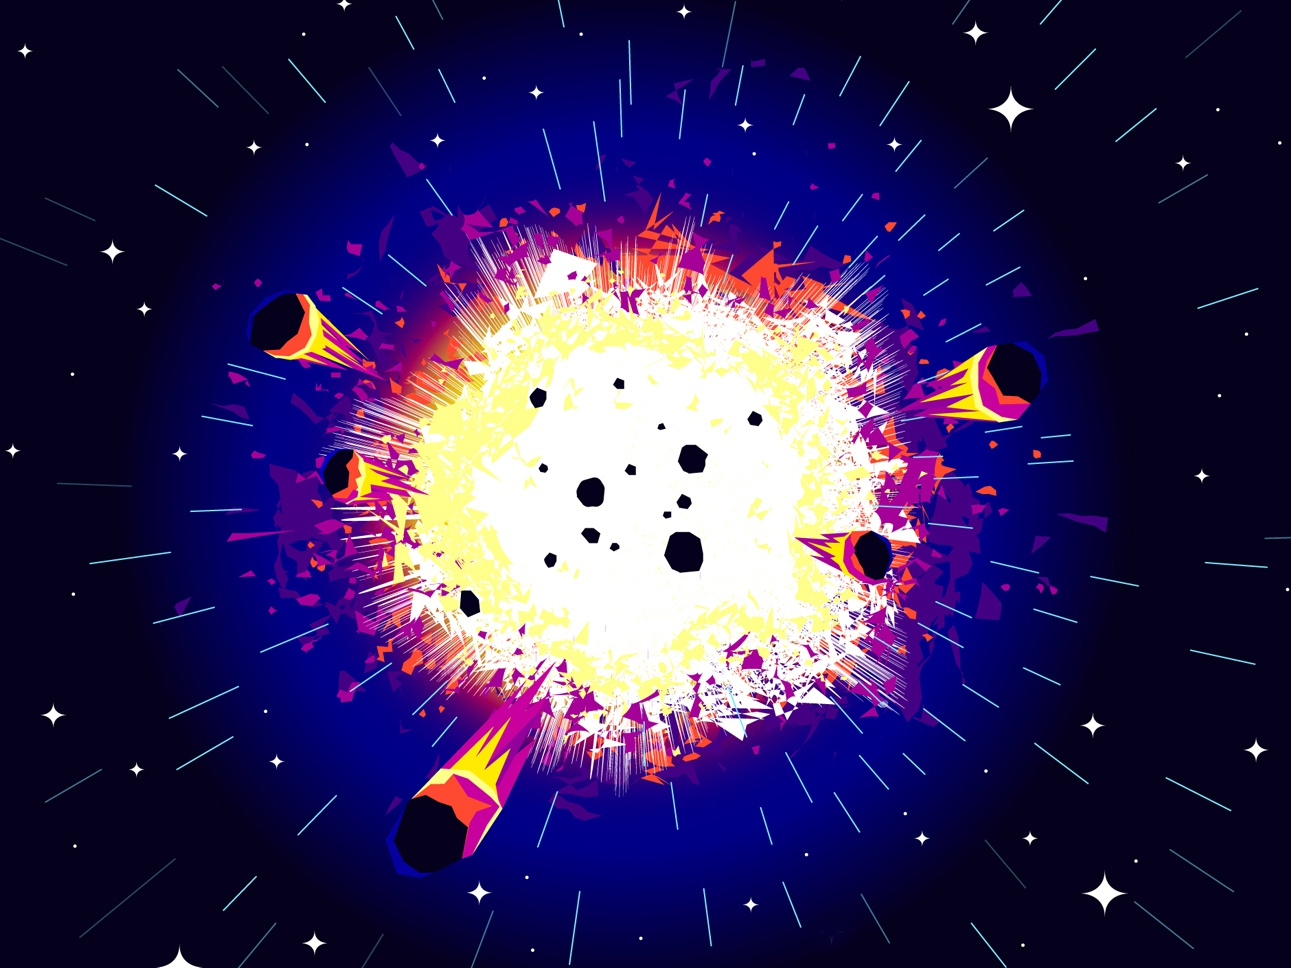 Big bang planets stars universe cosmos space vector explosion big bang illustration